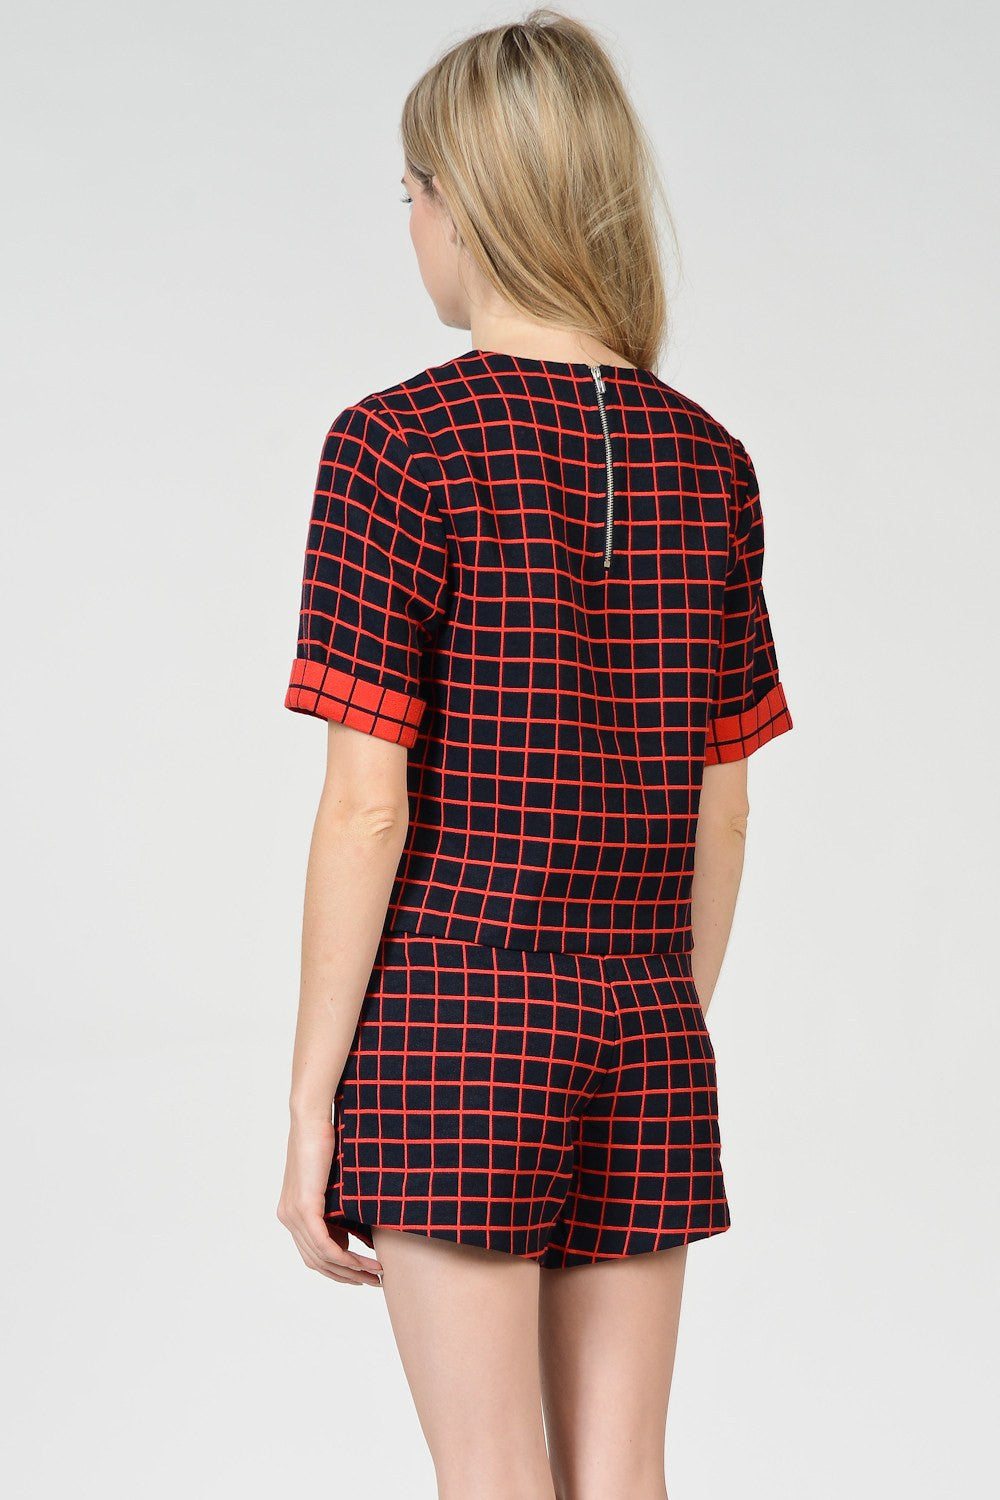 Navy X Red Plaid Tops